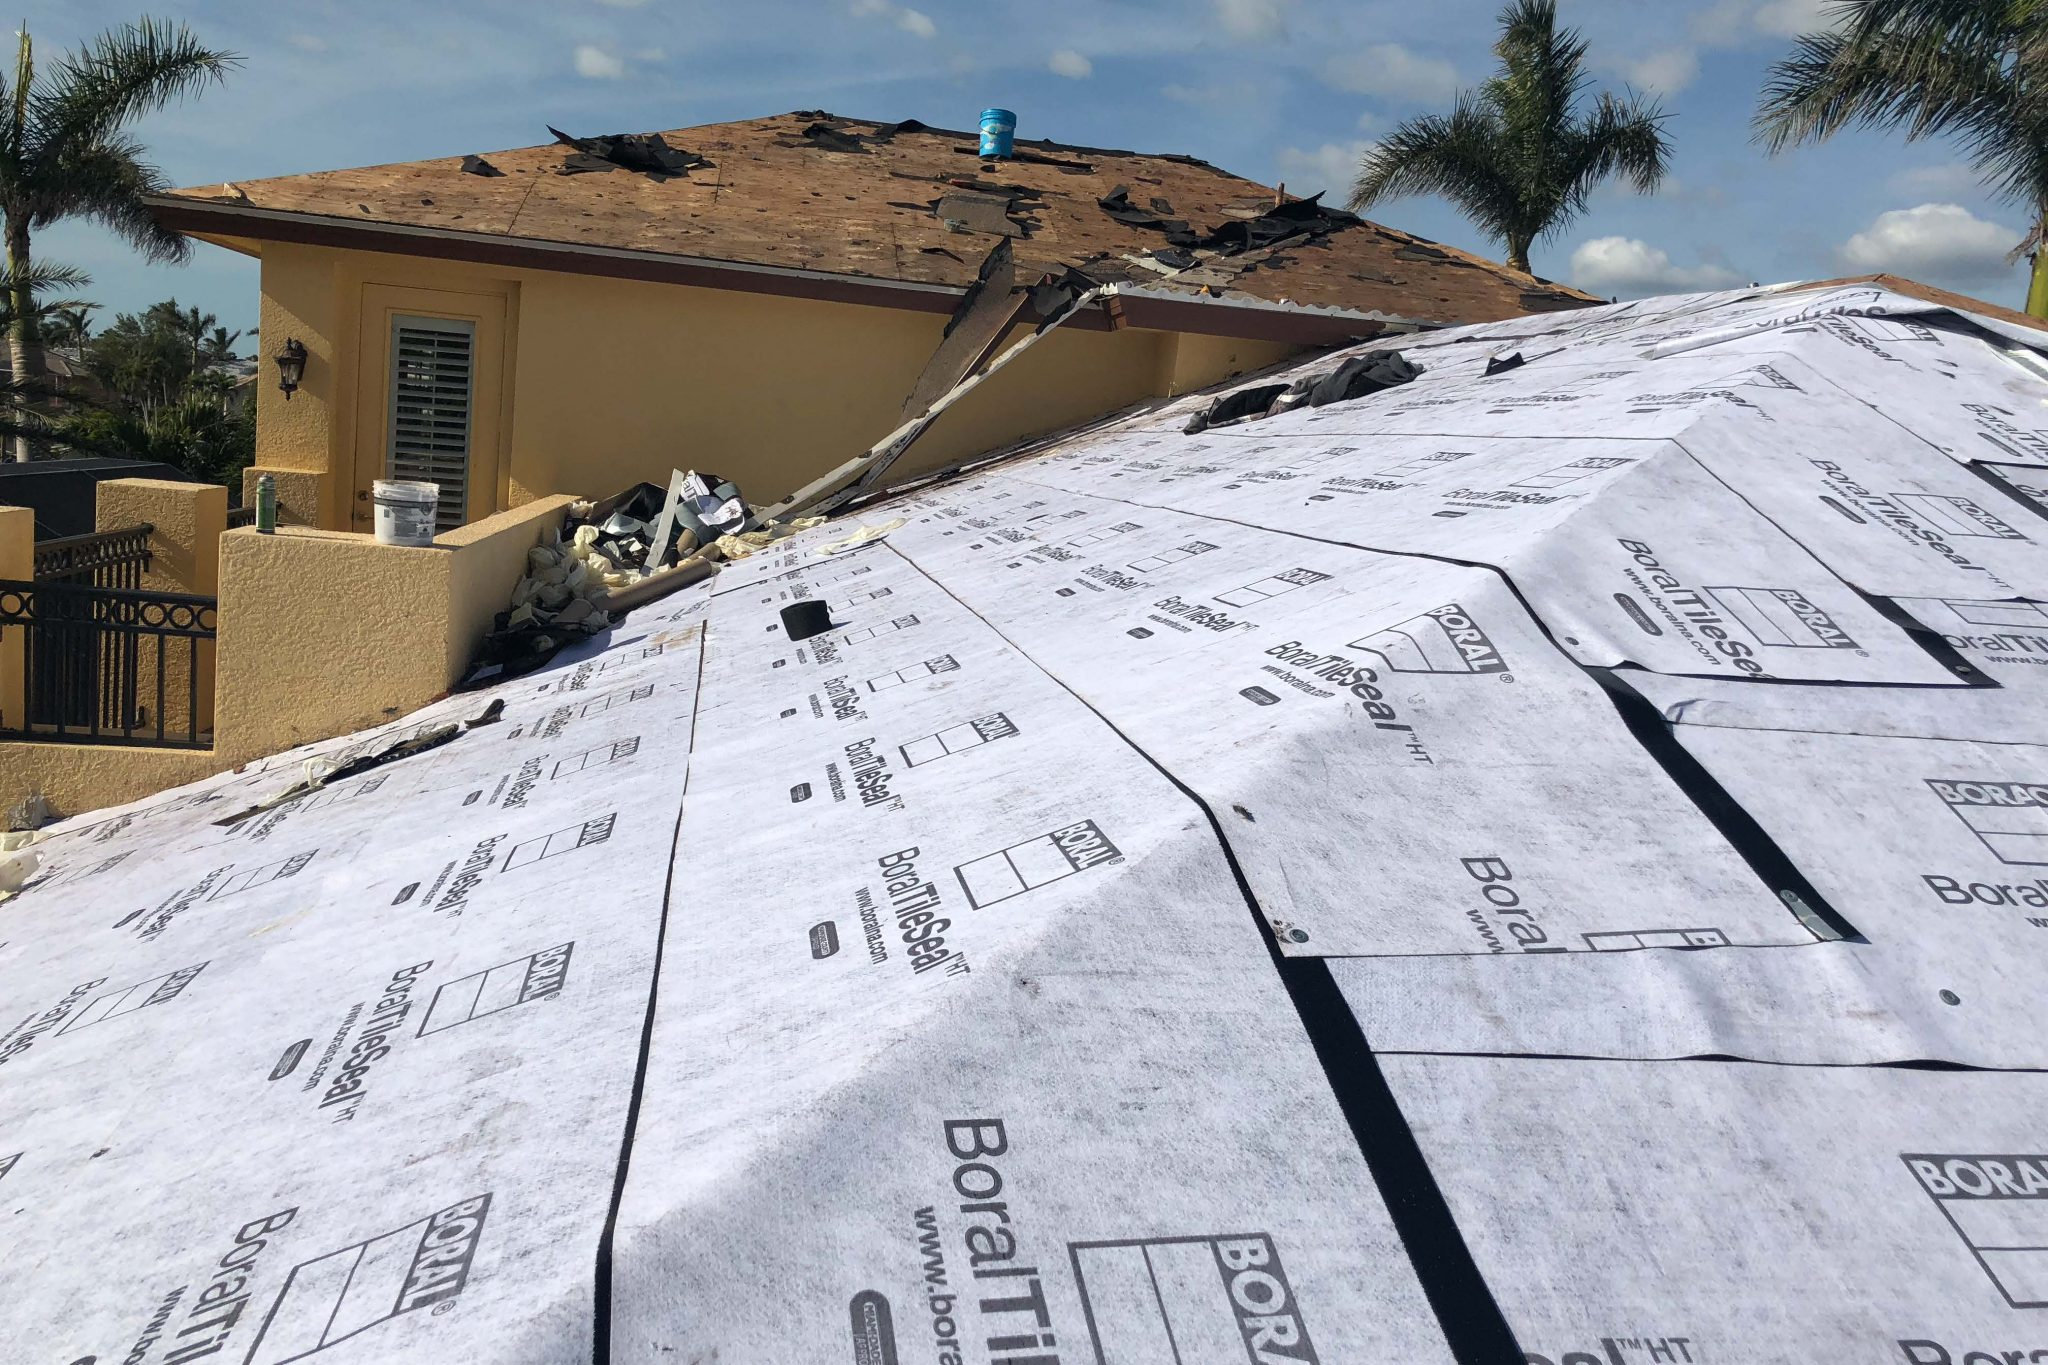 bor roofing 3 phases of roof repair gsd construction services llc